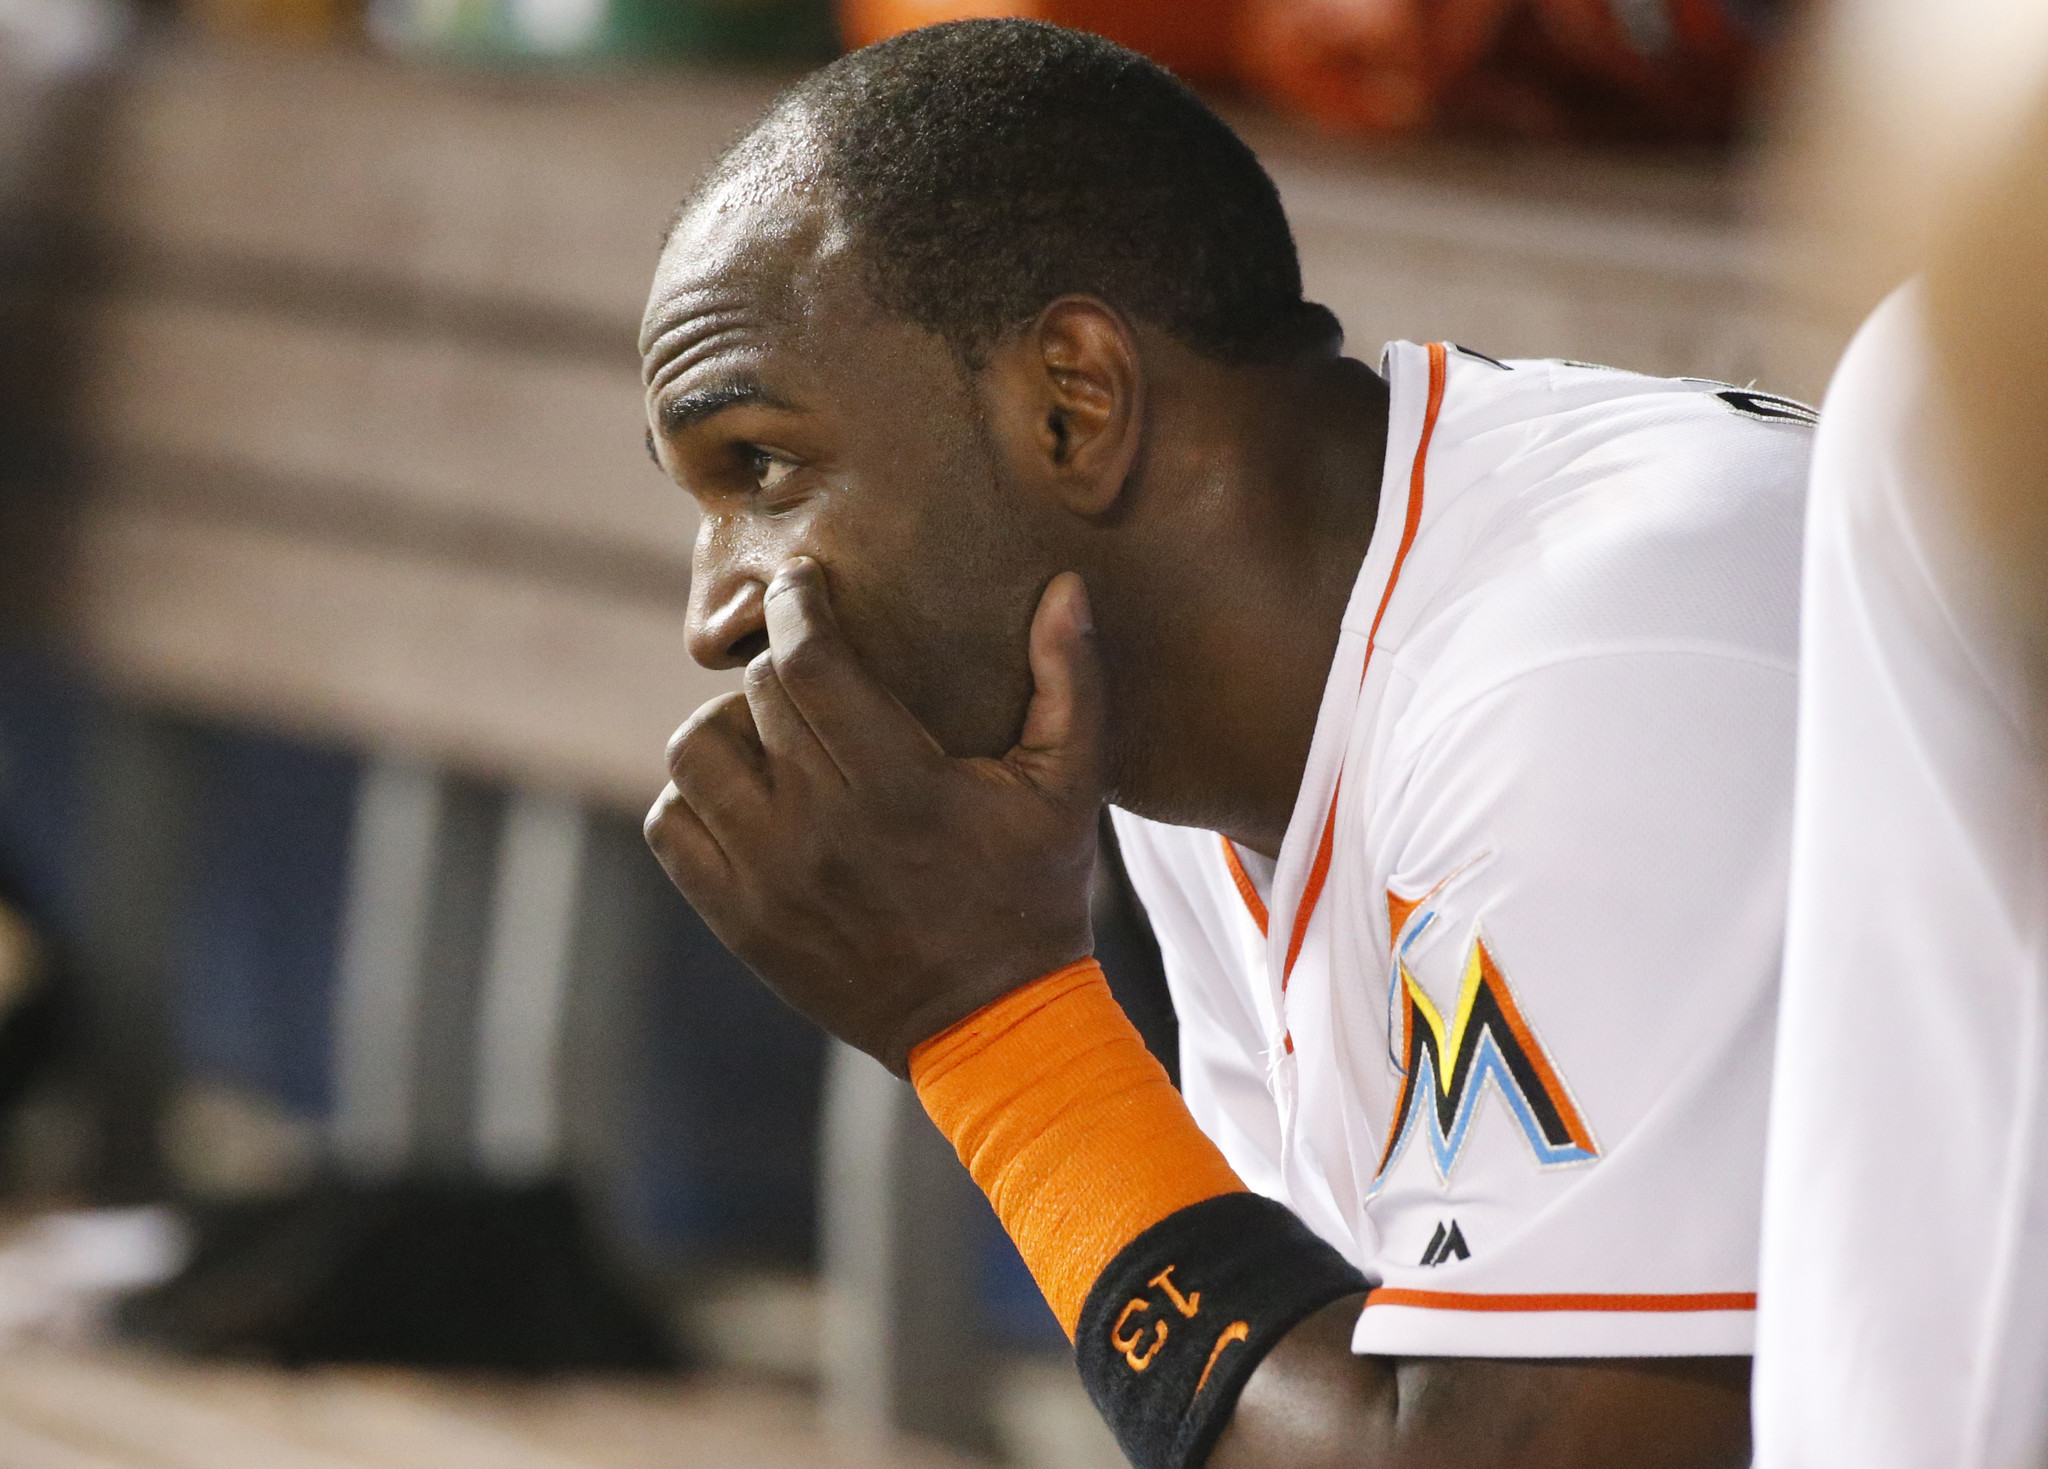 Marcell Ozuna Suffers Left Wrist Sprain Is Considered Day